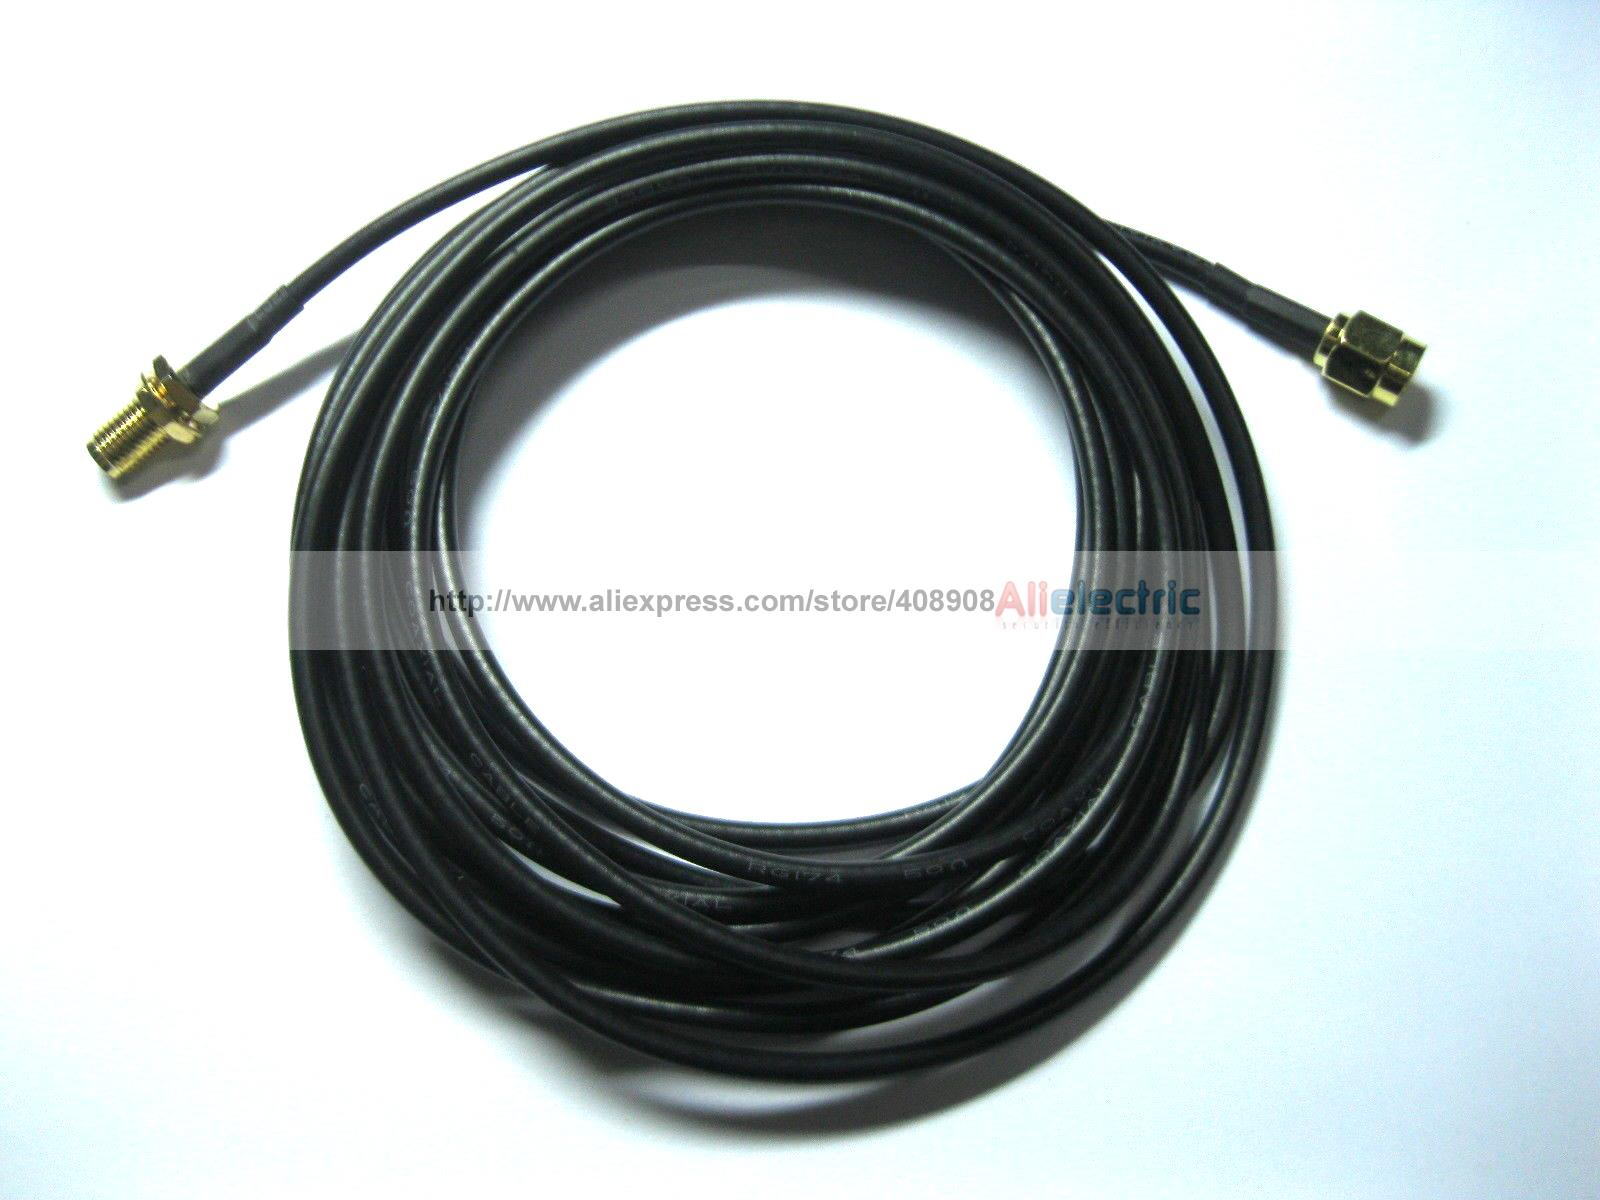 где купить 12 Pcs 3M Antenna RP SMA Coaxial Cable for WiFi Router Black 300cm дешево